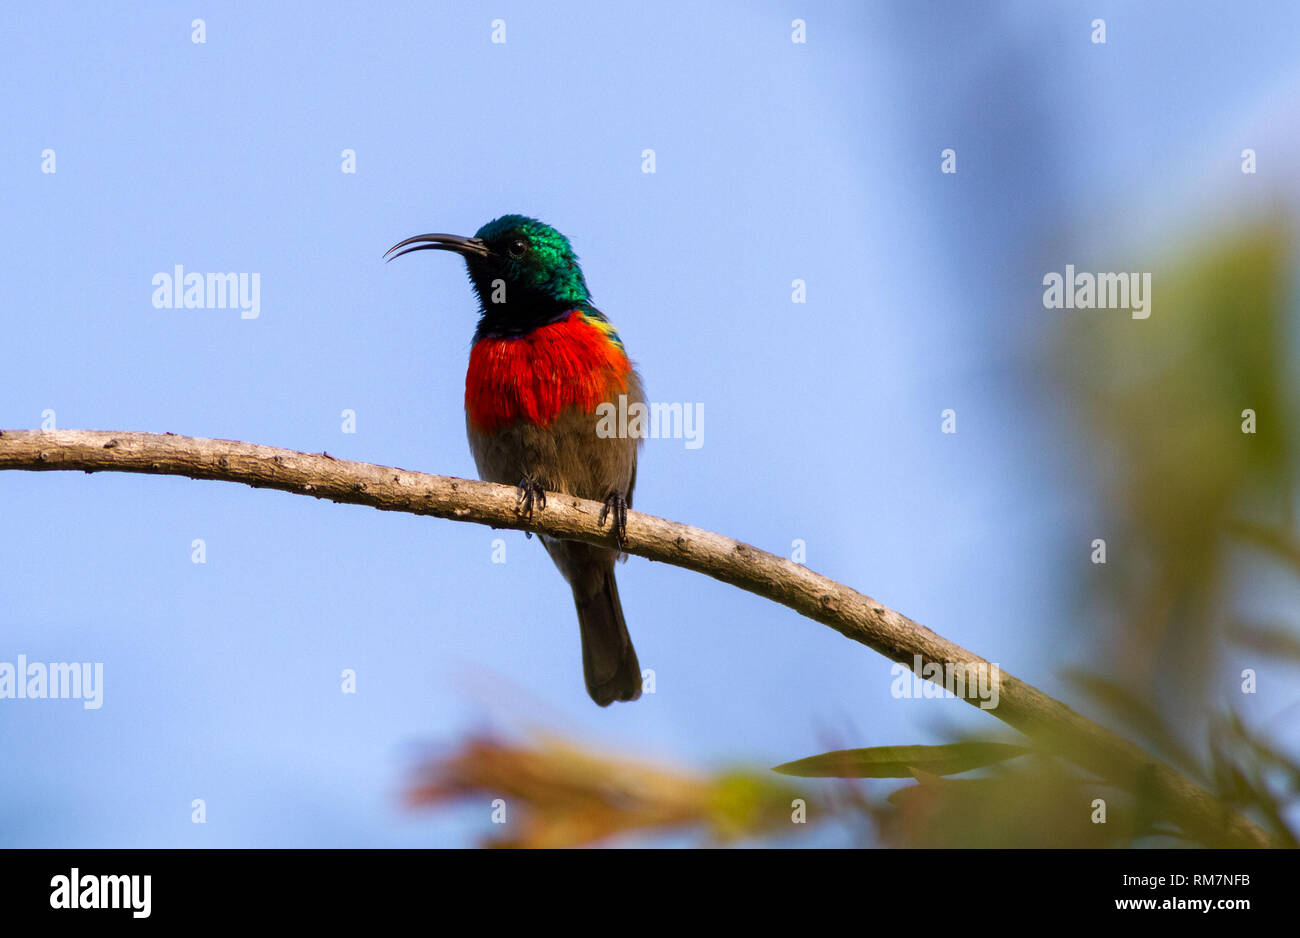 Greater double-collared sunbird (Cinnyris afra) from the front profile, perched in a tree singing, South Africa - Stock Image